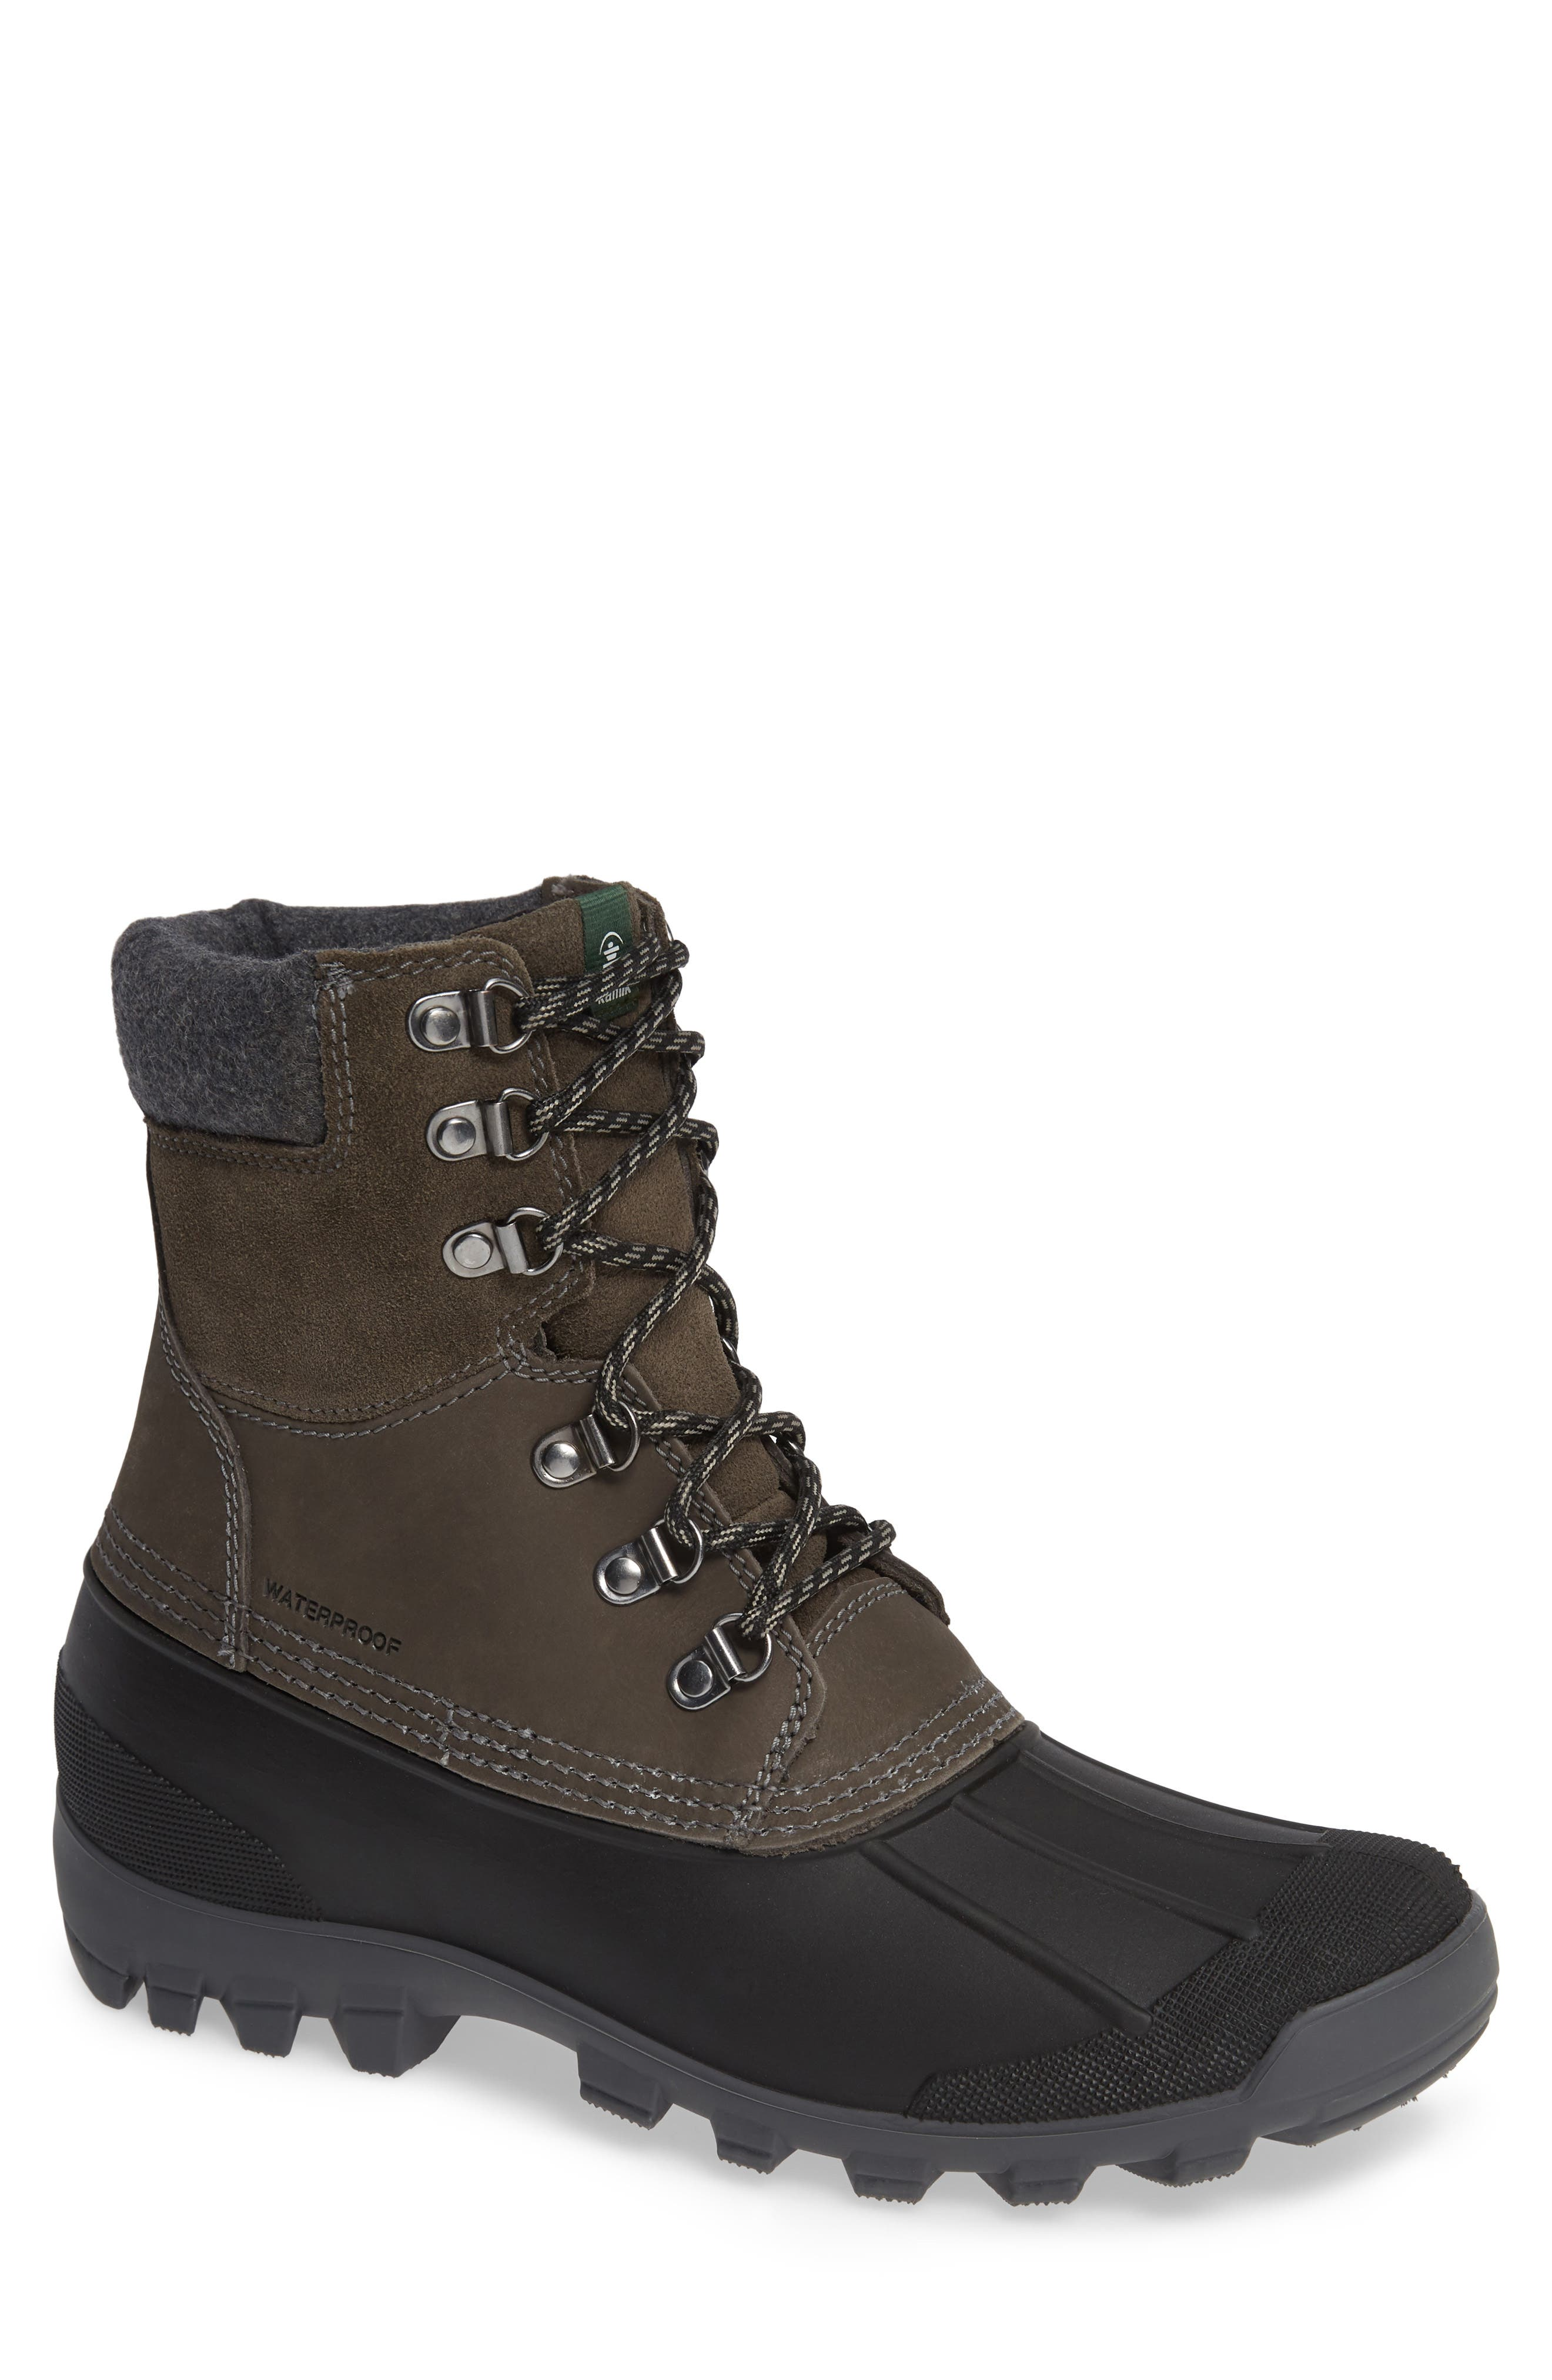 Hudson 5 Boot,                             Main thumbnail 1, color,                             CHARCOAL LEATHER